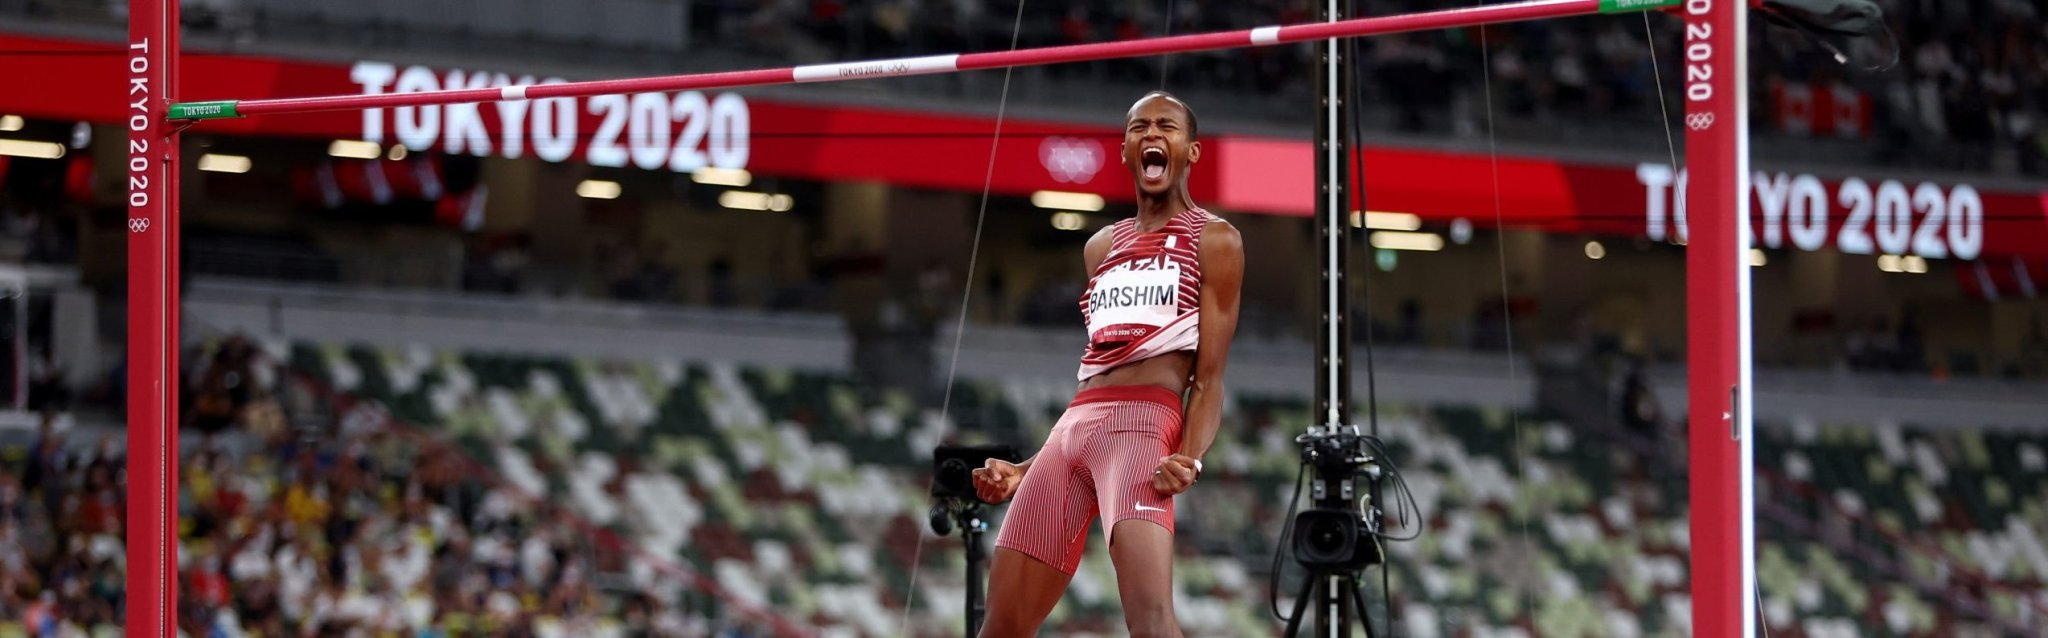 Olympics-Athletics-'Can we have two golds?' – Barshim, Tamberi share high jump win